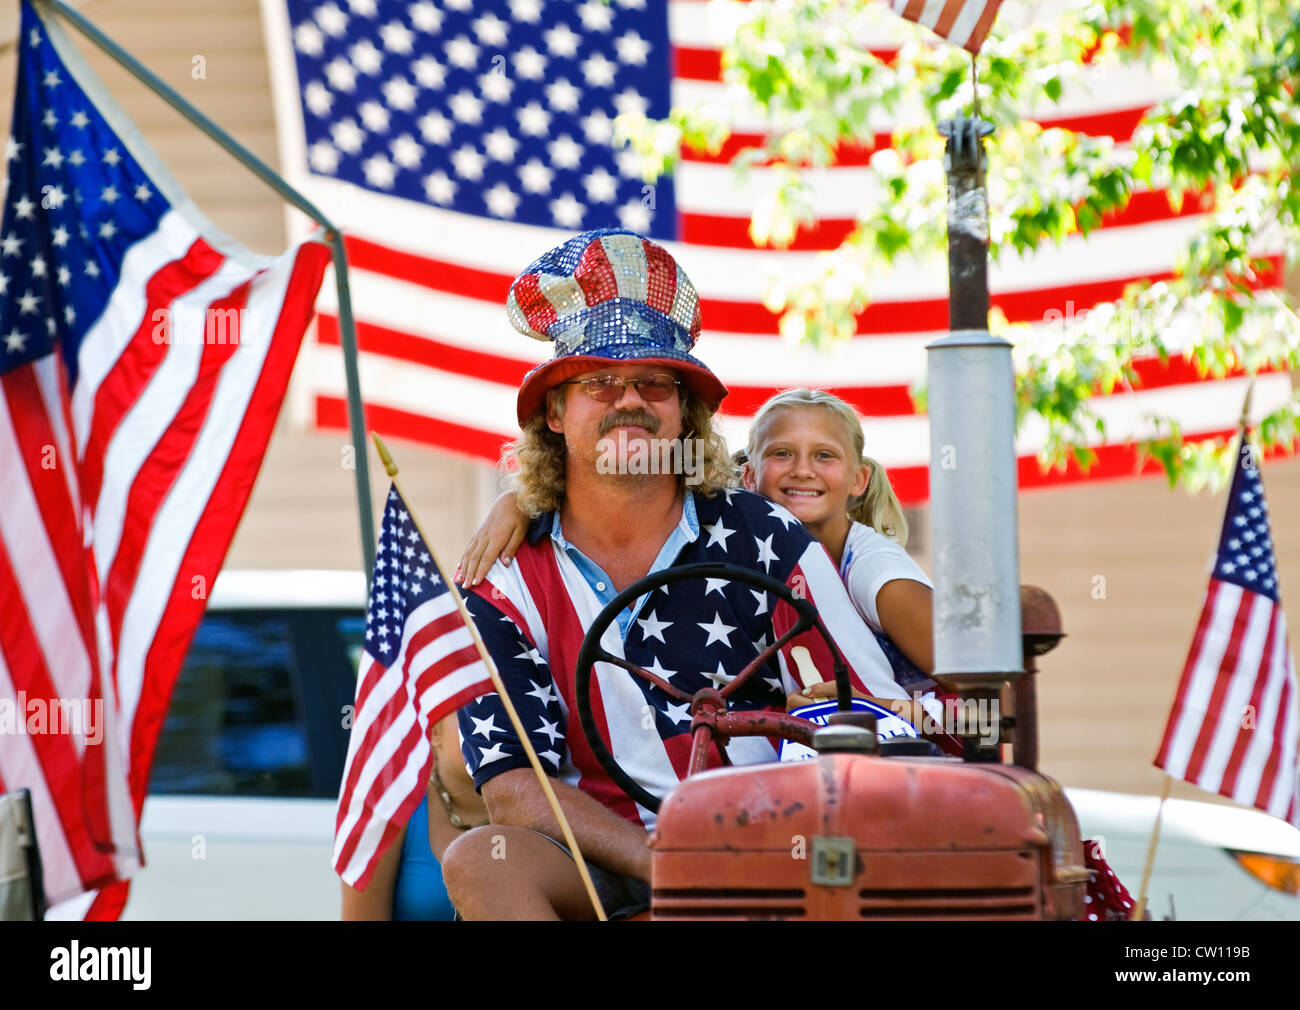 Patriotic Father and Daughter on Tractor after Independence Day Parade in New Pekin, Indiana Stock Photo